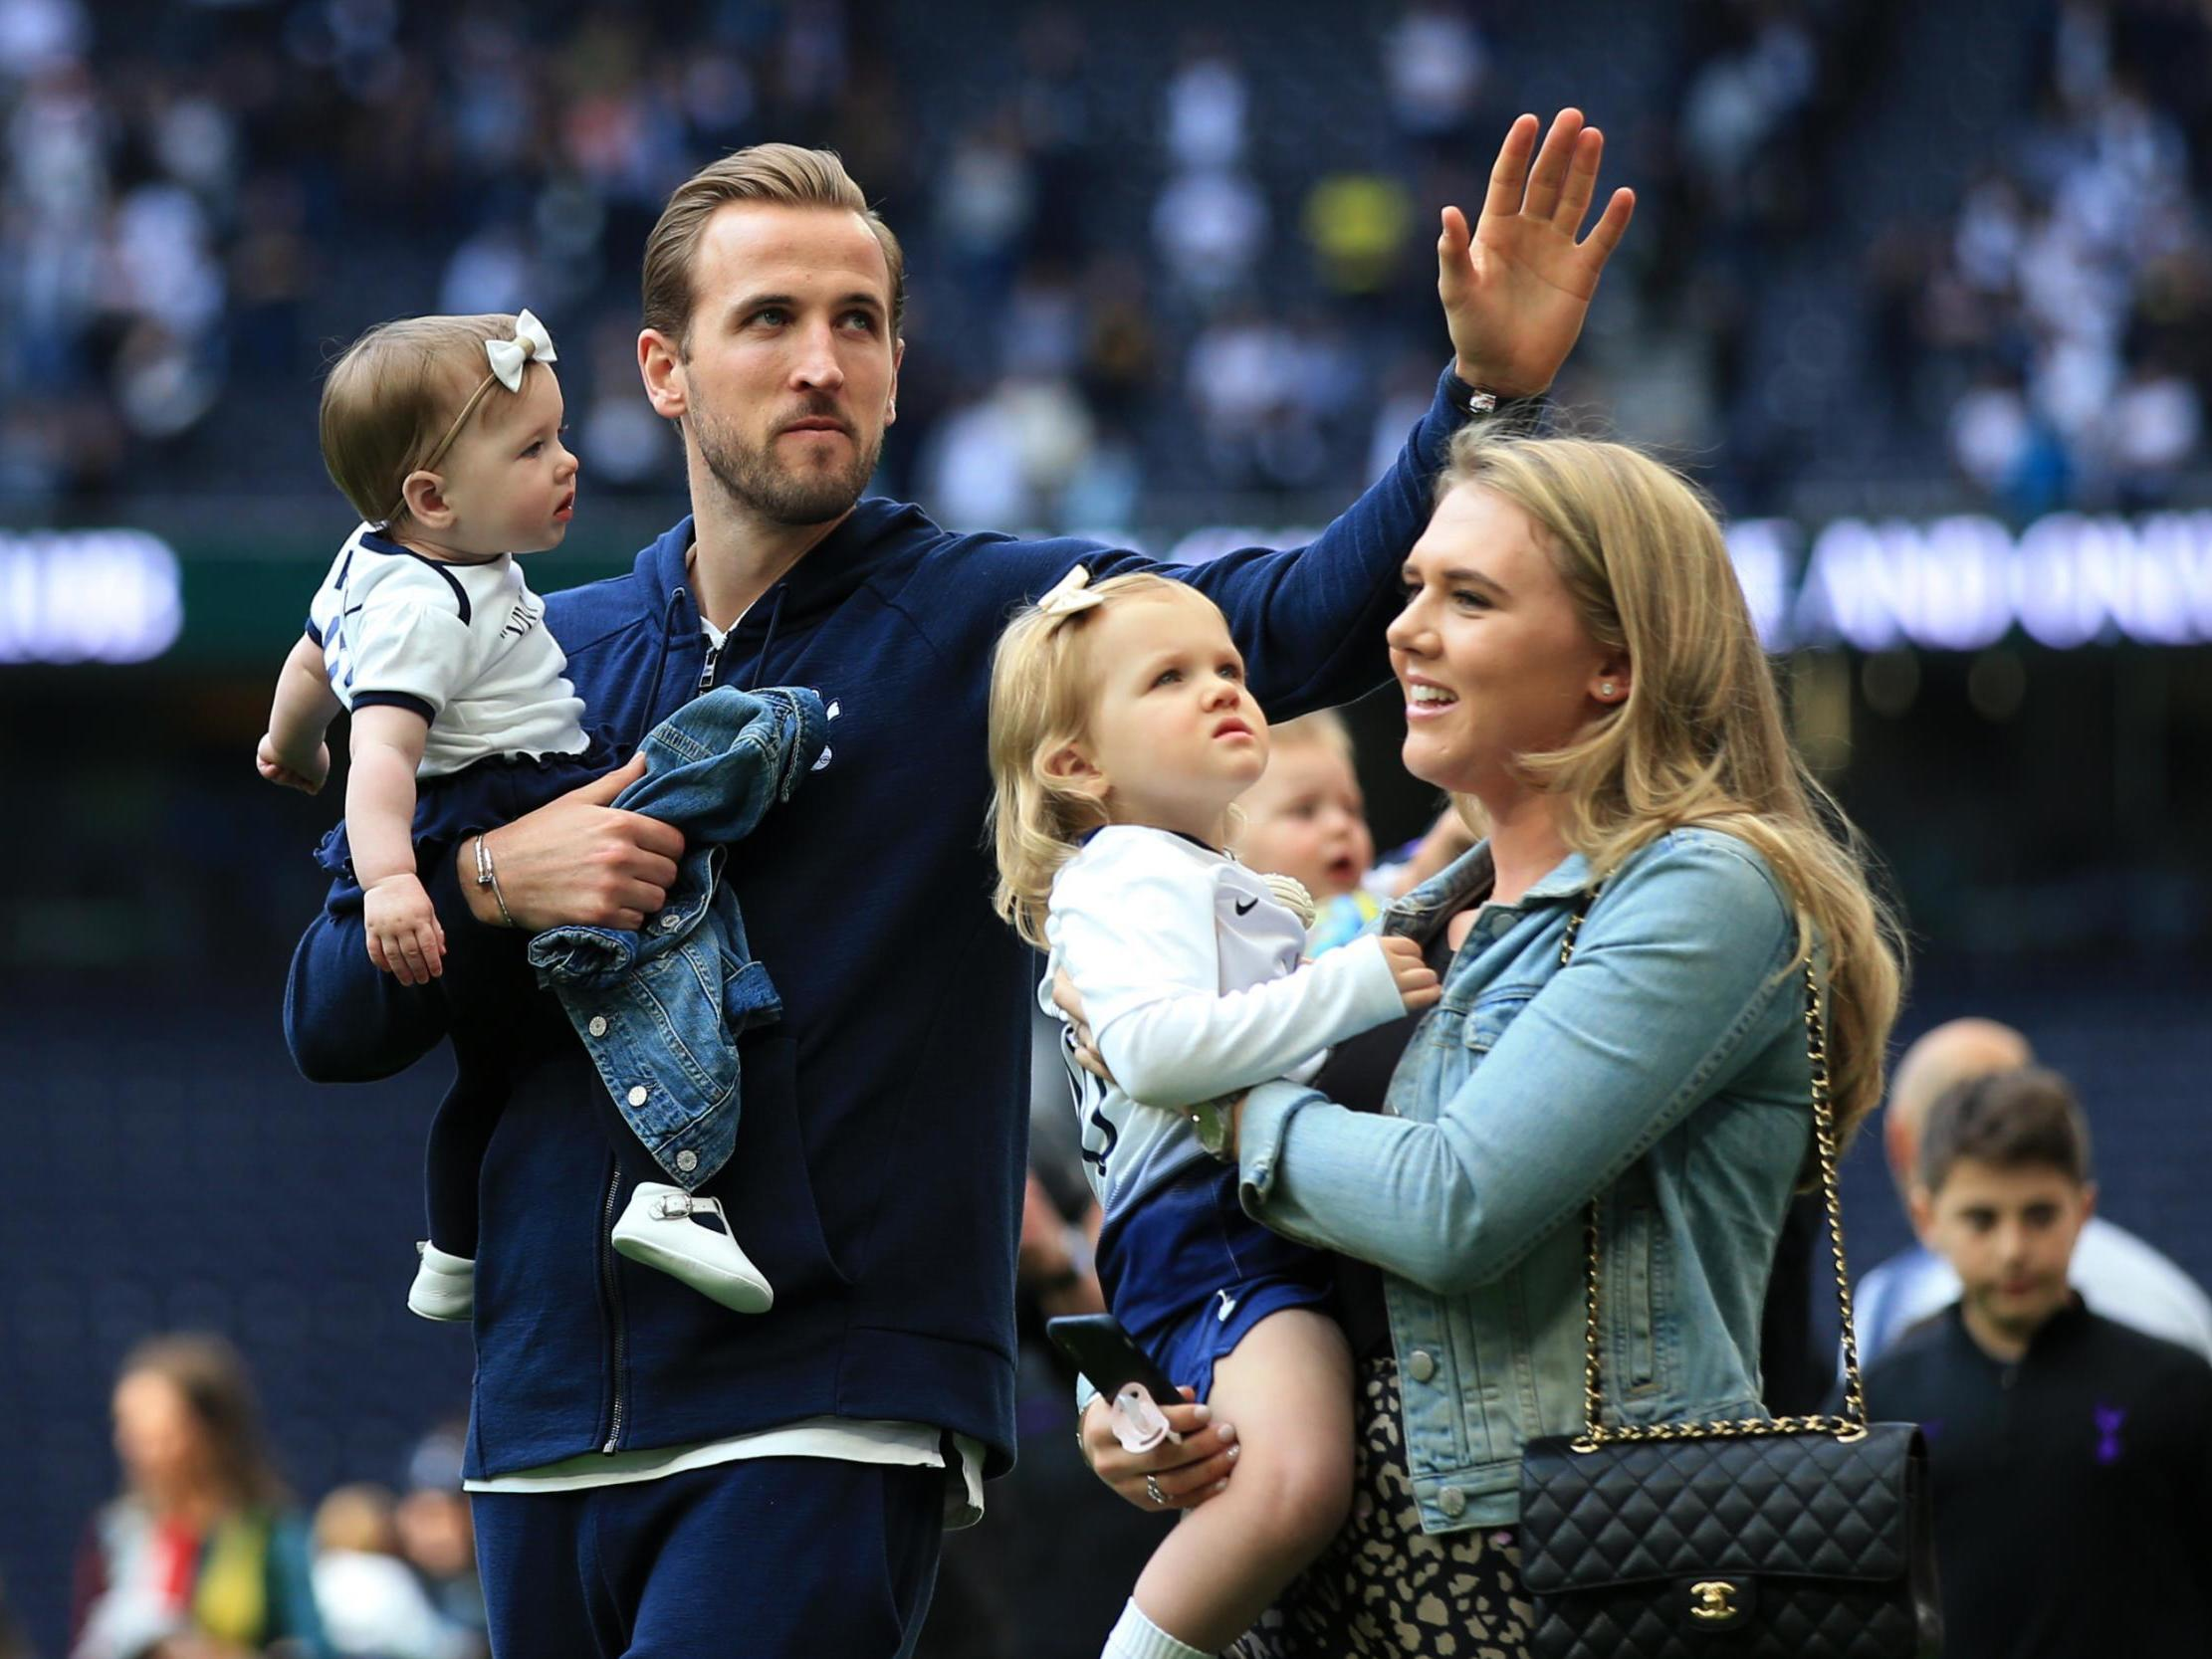 harry kane and wife kate announce they are expecting third child the independent the independent harry kane and wife kate announce they